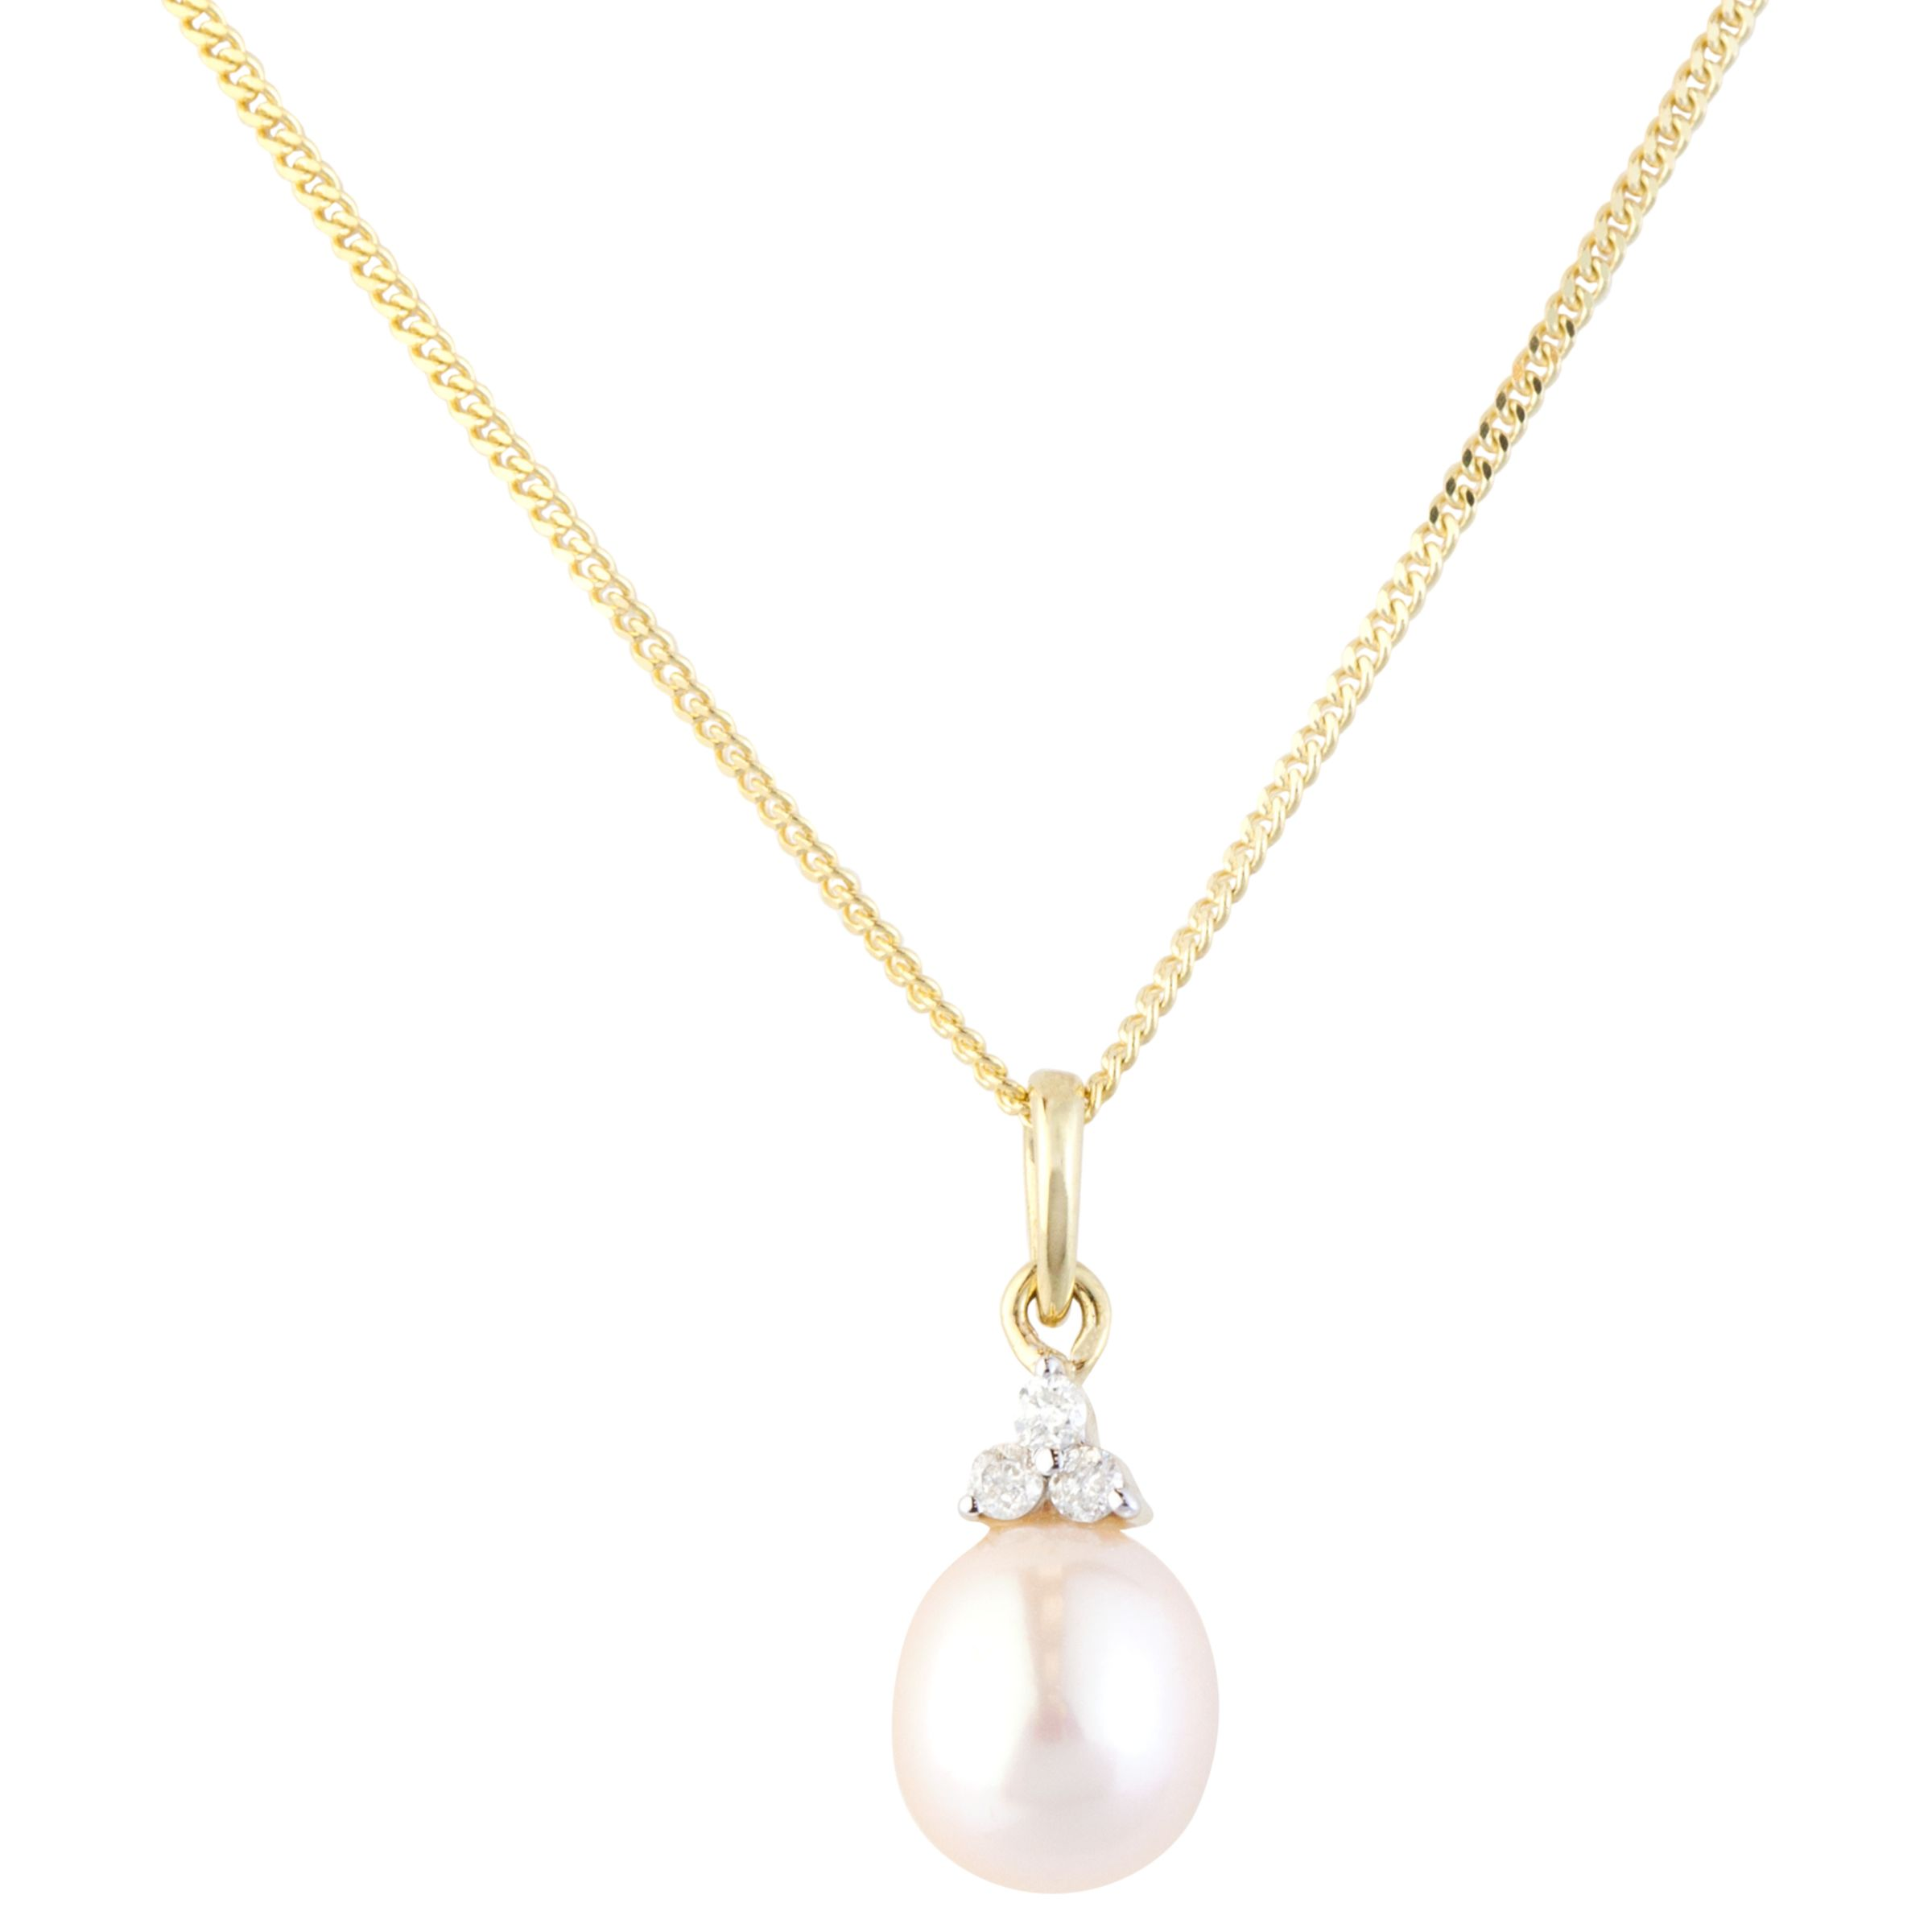 A B Davis A B Davis 9ct Gold Diamond and Pearl Pendant Necklace, Gold